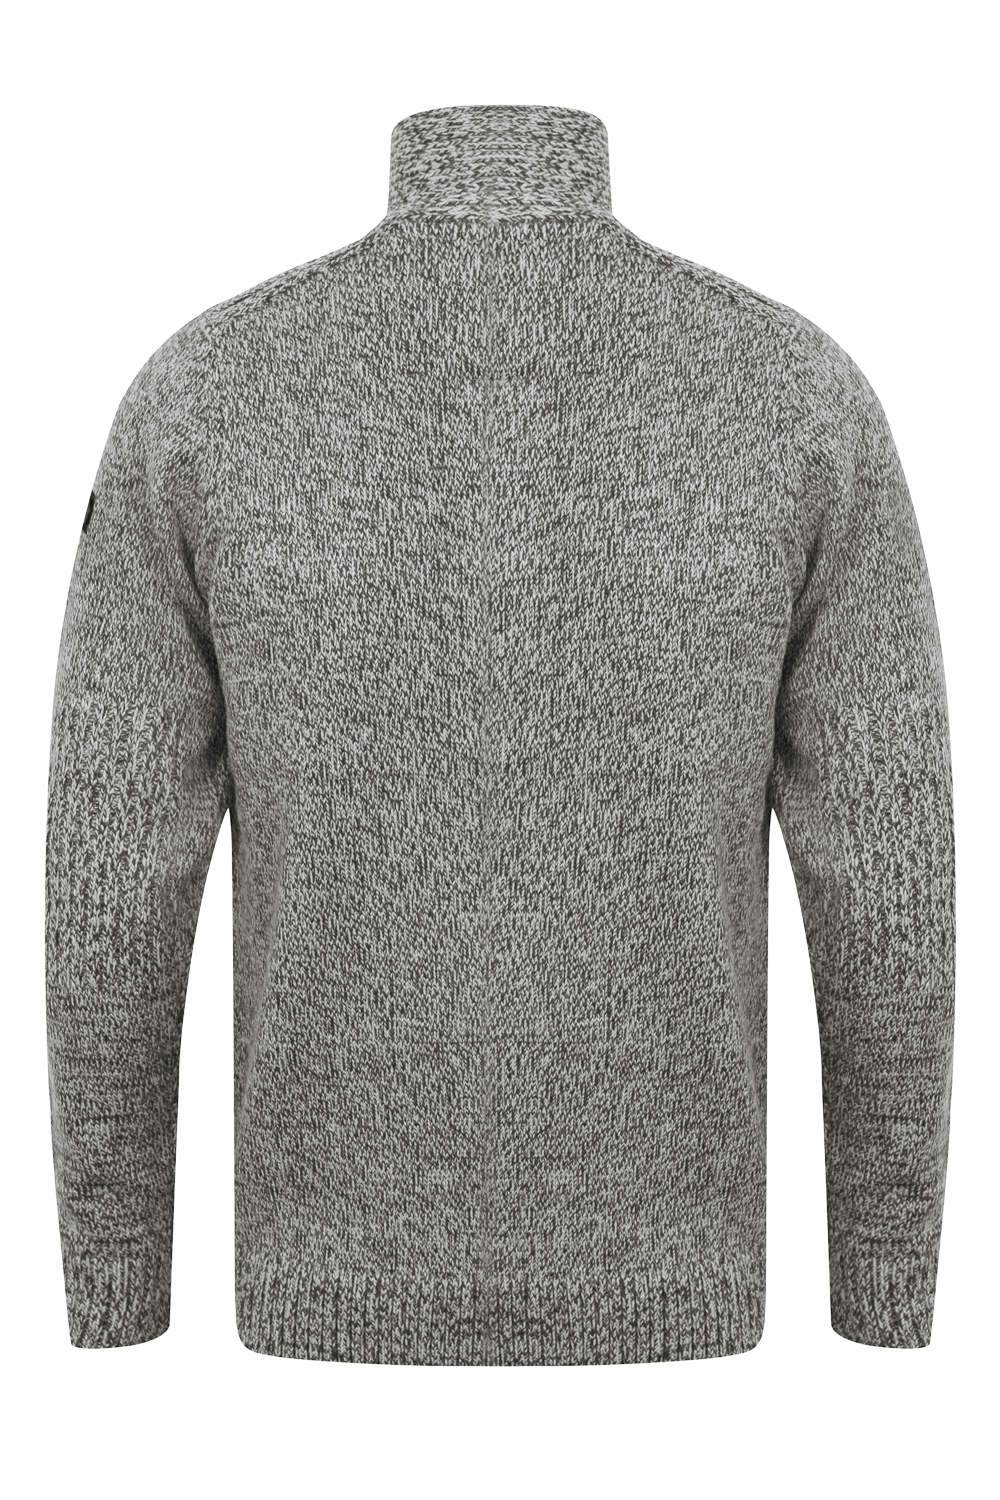 Dissident Mens Designer Nitro Jumper Chunky Cable Knit Funnel Neck Pullover Top